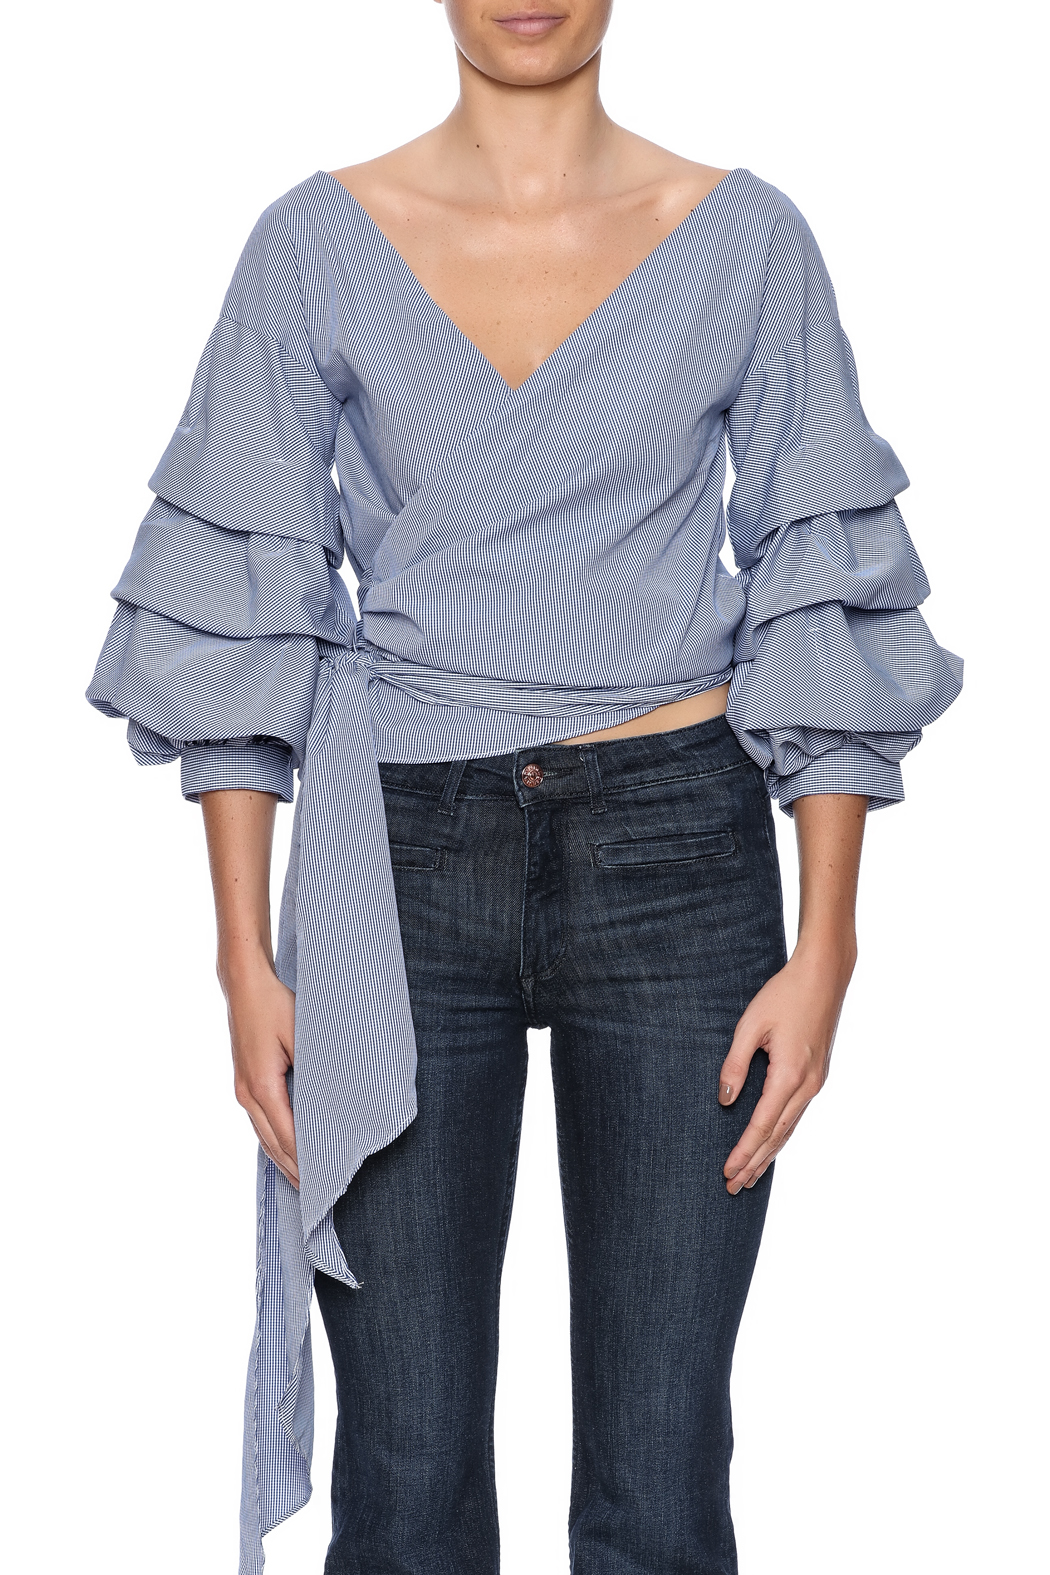 alpha & omega Ruffle Sleeve Top - Side Cropped Image